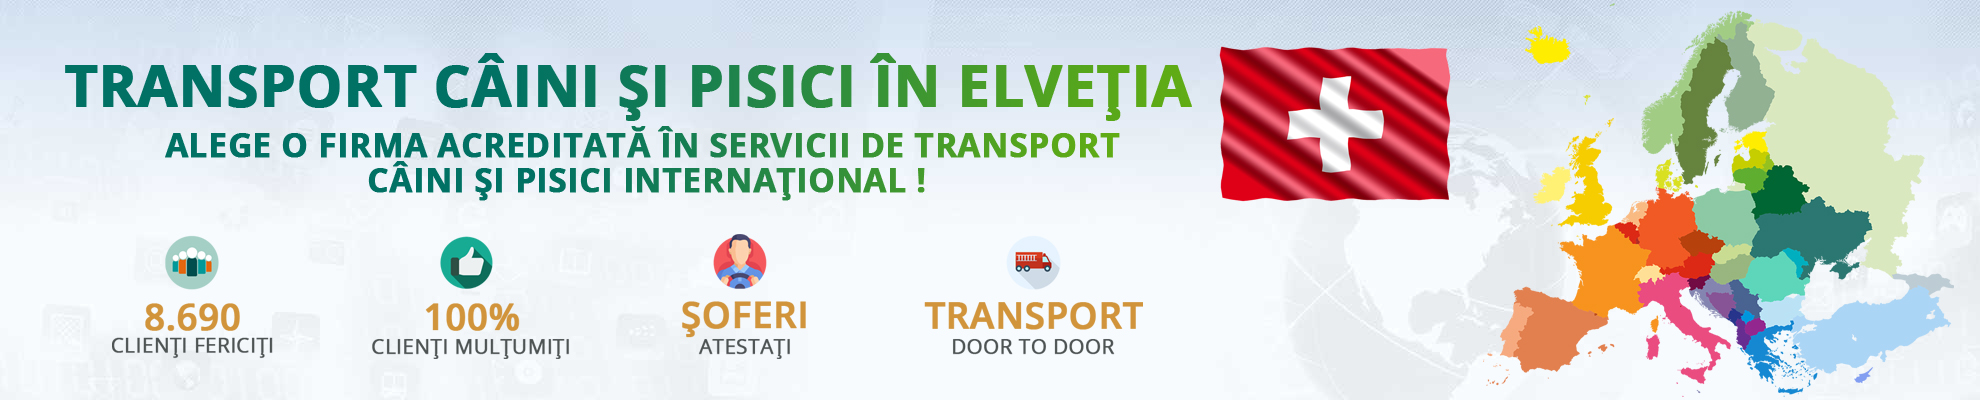 Transport caini si pisici in Elvetia